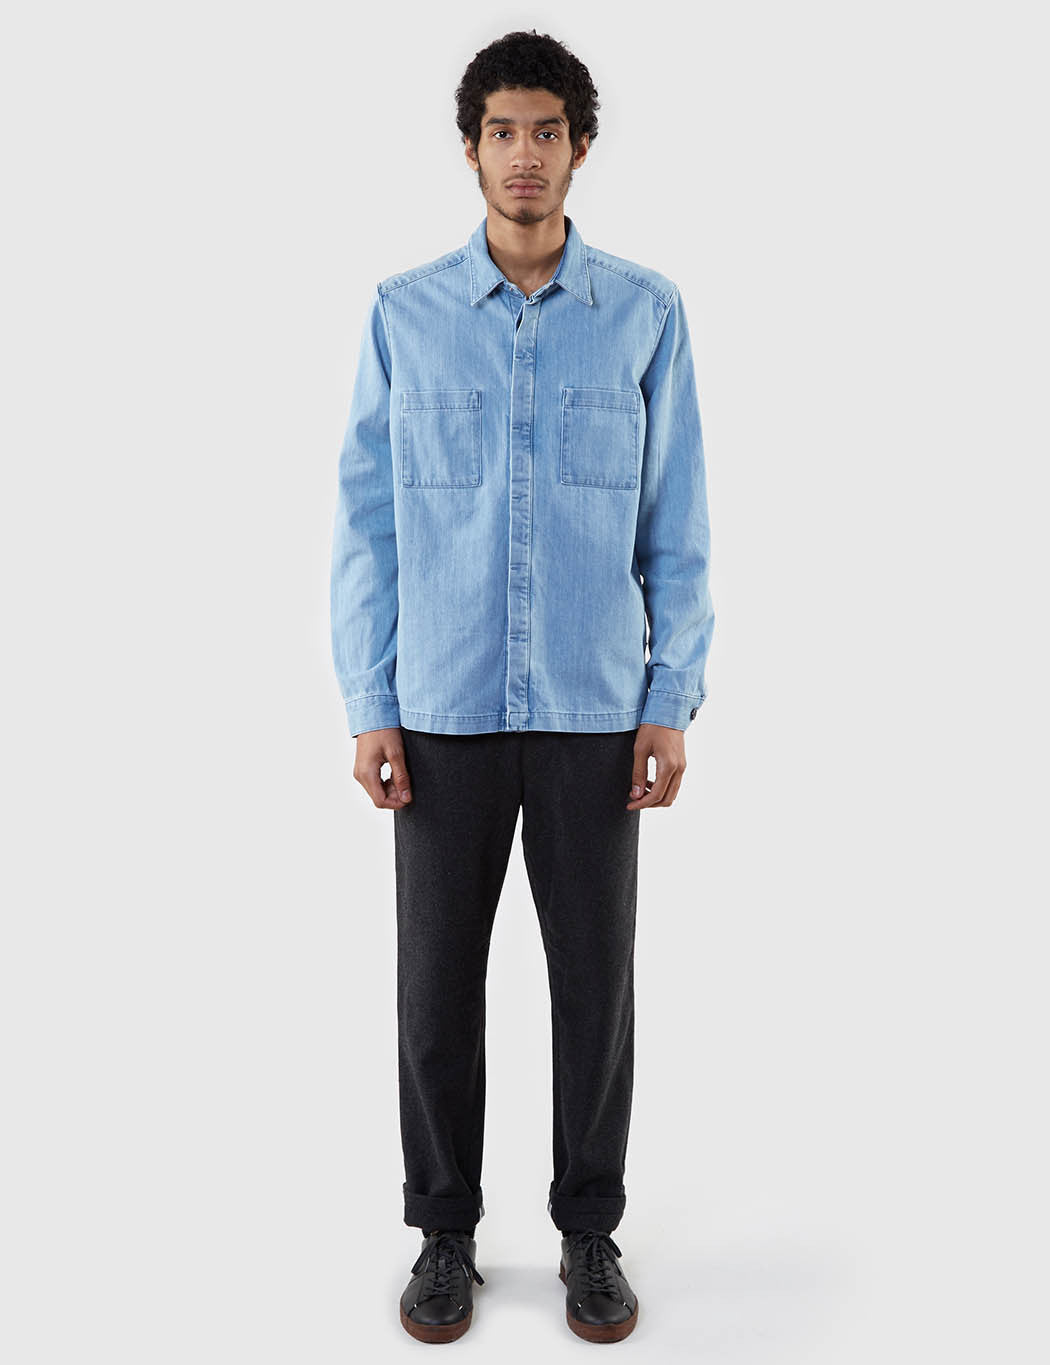 Gant Rugger Denim Shirt - Indigo Blue